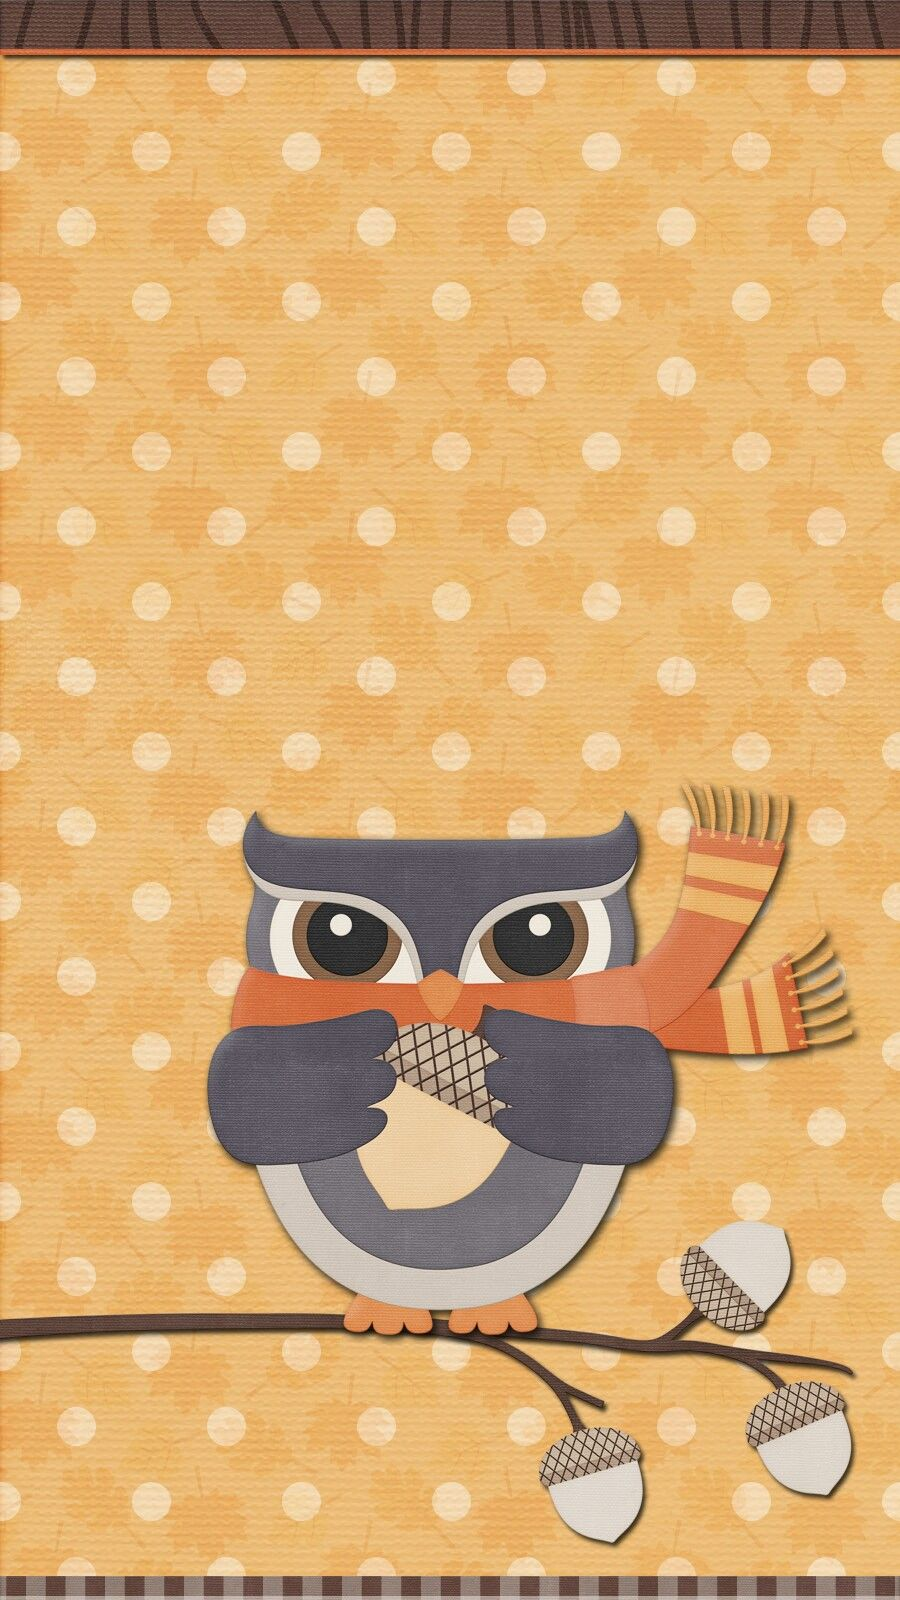 Autumn Wallpaper Iphone Android Theme Cute Owl Wallpaper Iphone Wallpaper Fall Thanksgiving Wallpaper